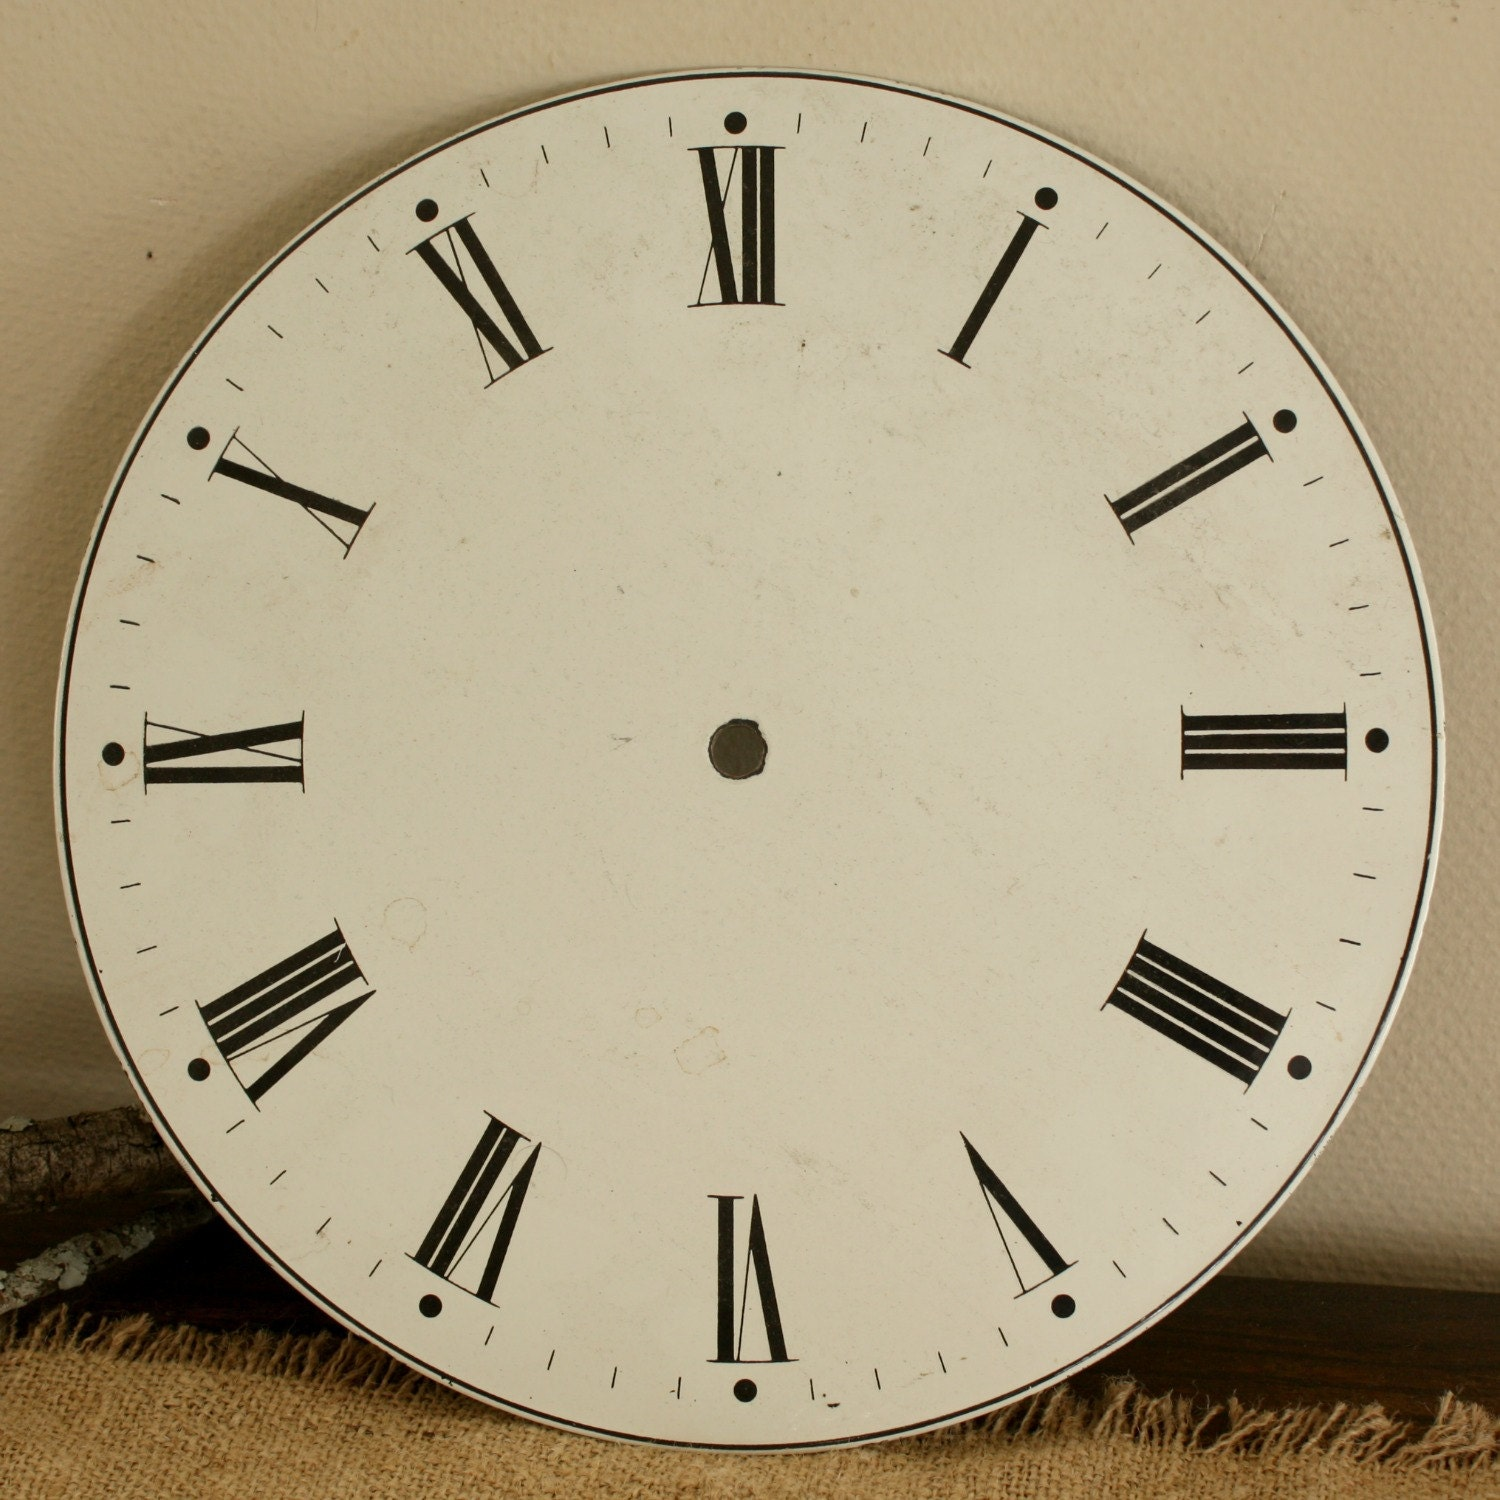 Large Antique Enamelled Wall Clock Face 11 1 2 Inches